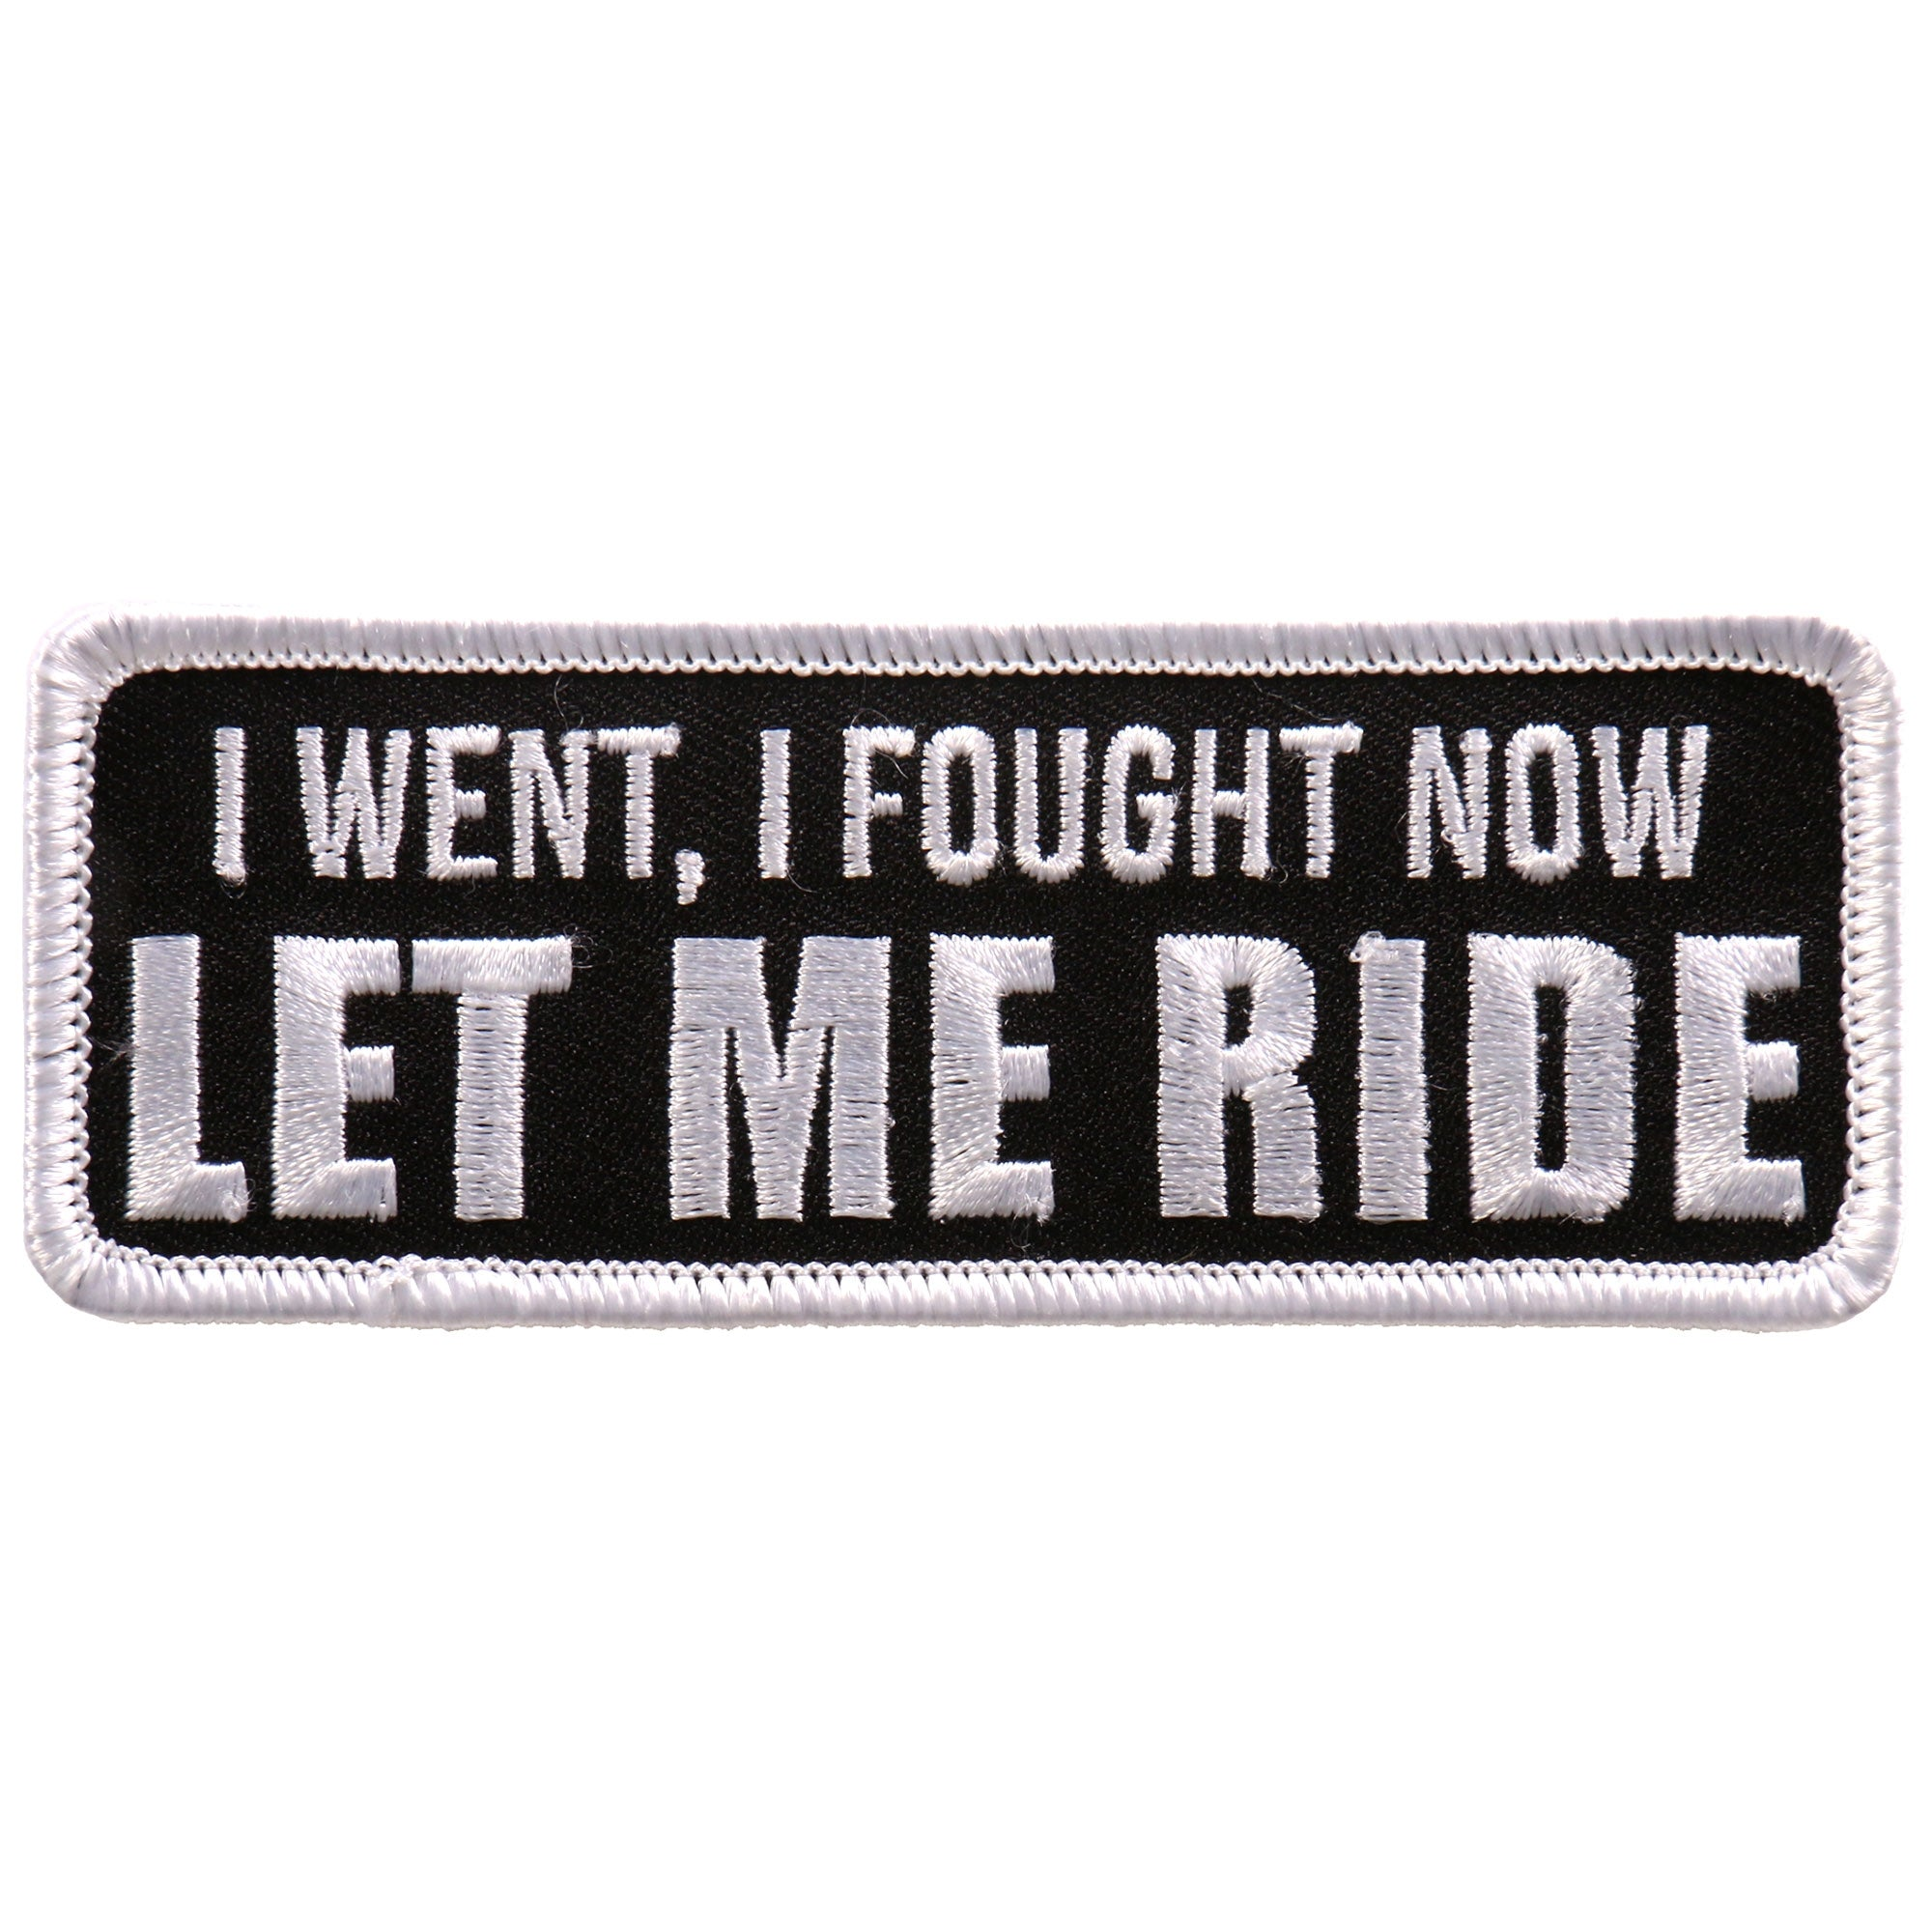 "Hot Leathers Let Me Ride 4""x2"" Patch"